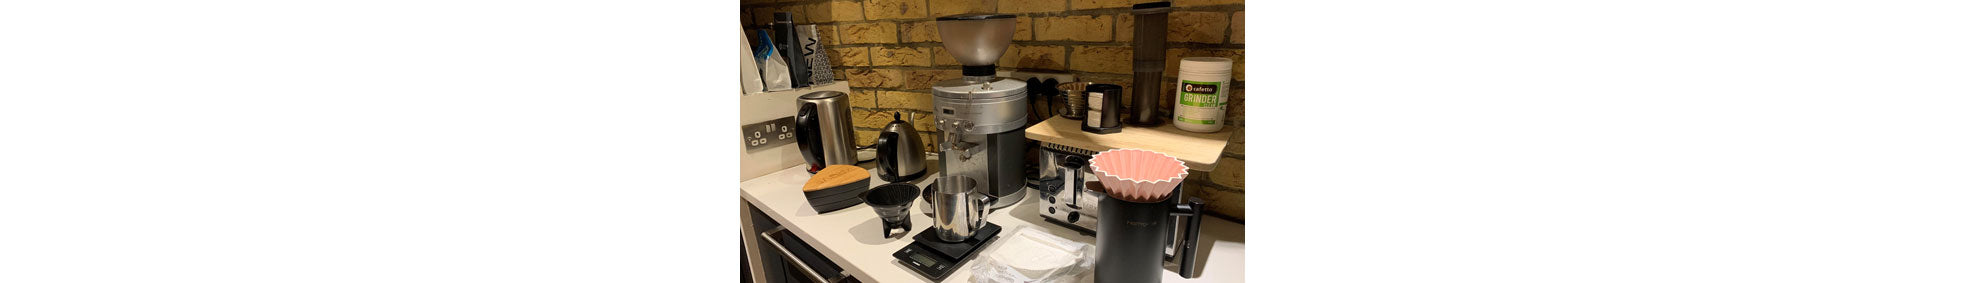 Coffee Subscription Members Coffee Equipment